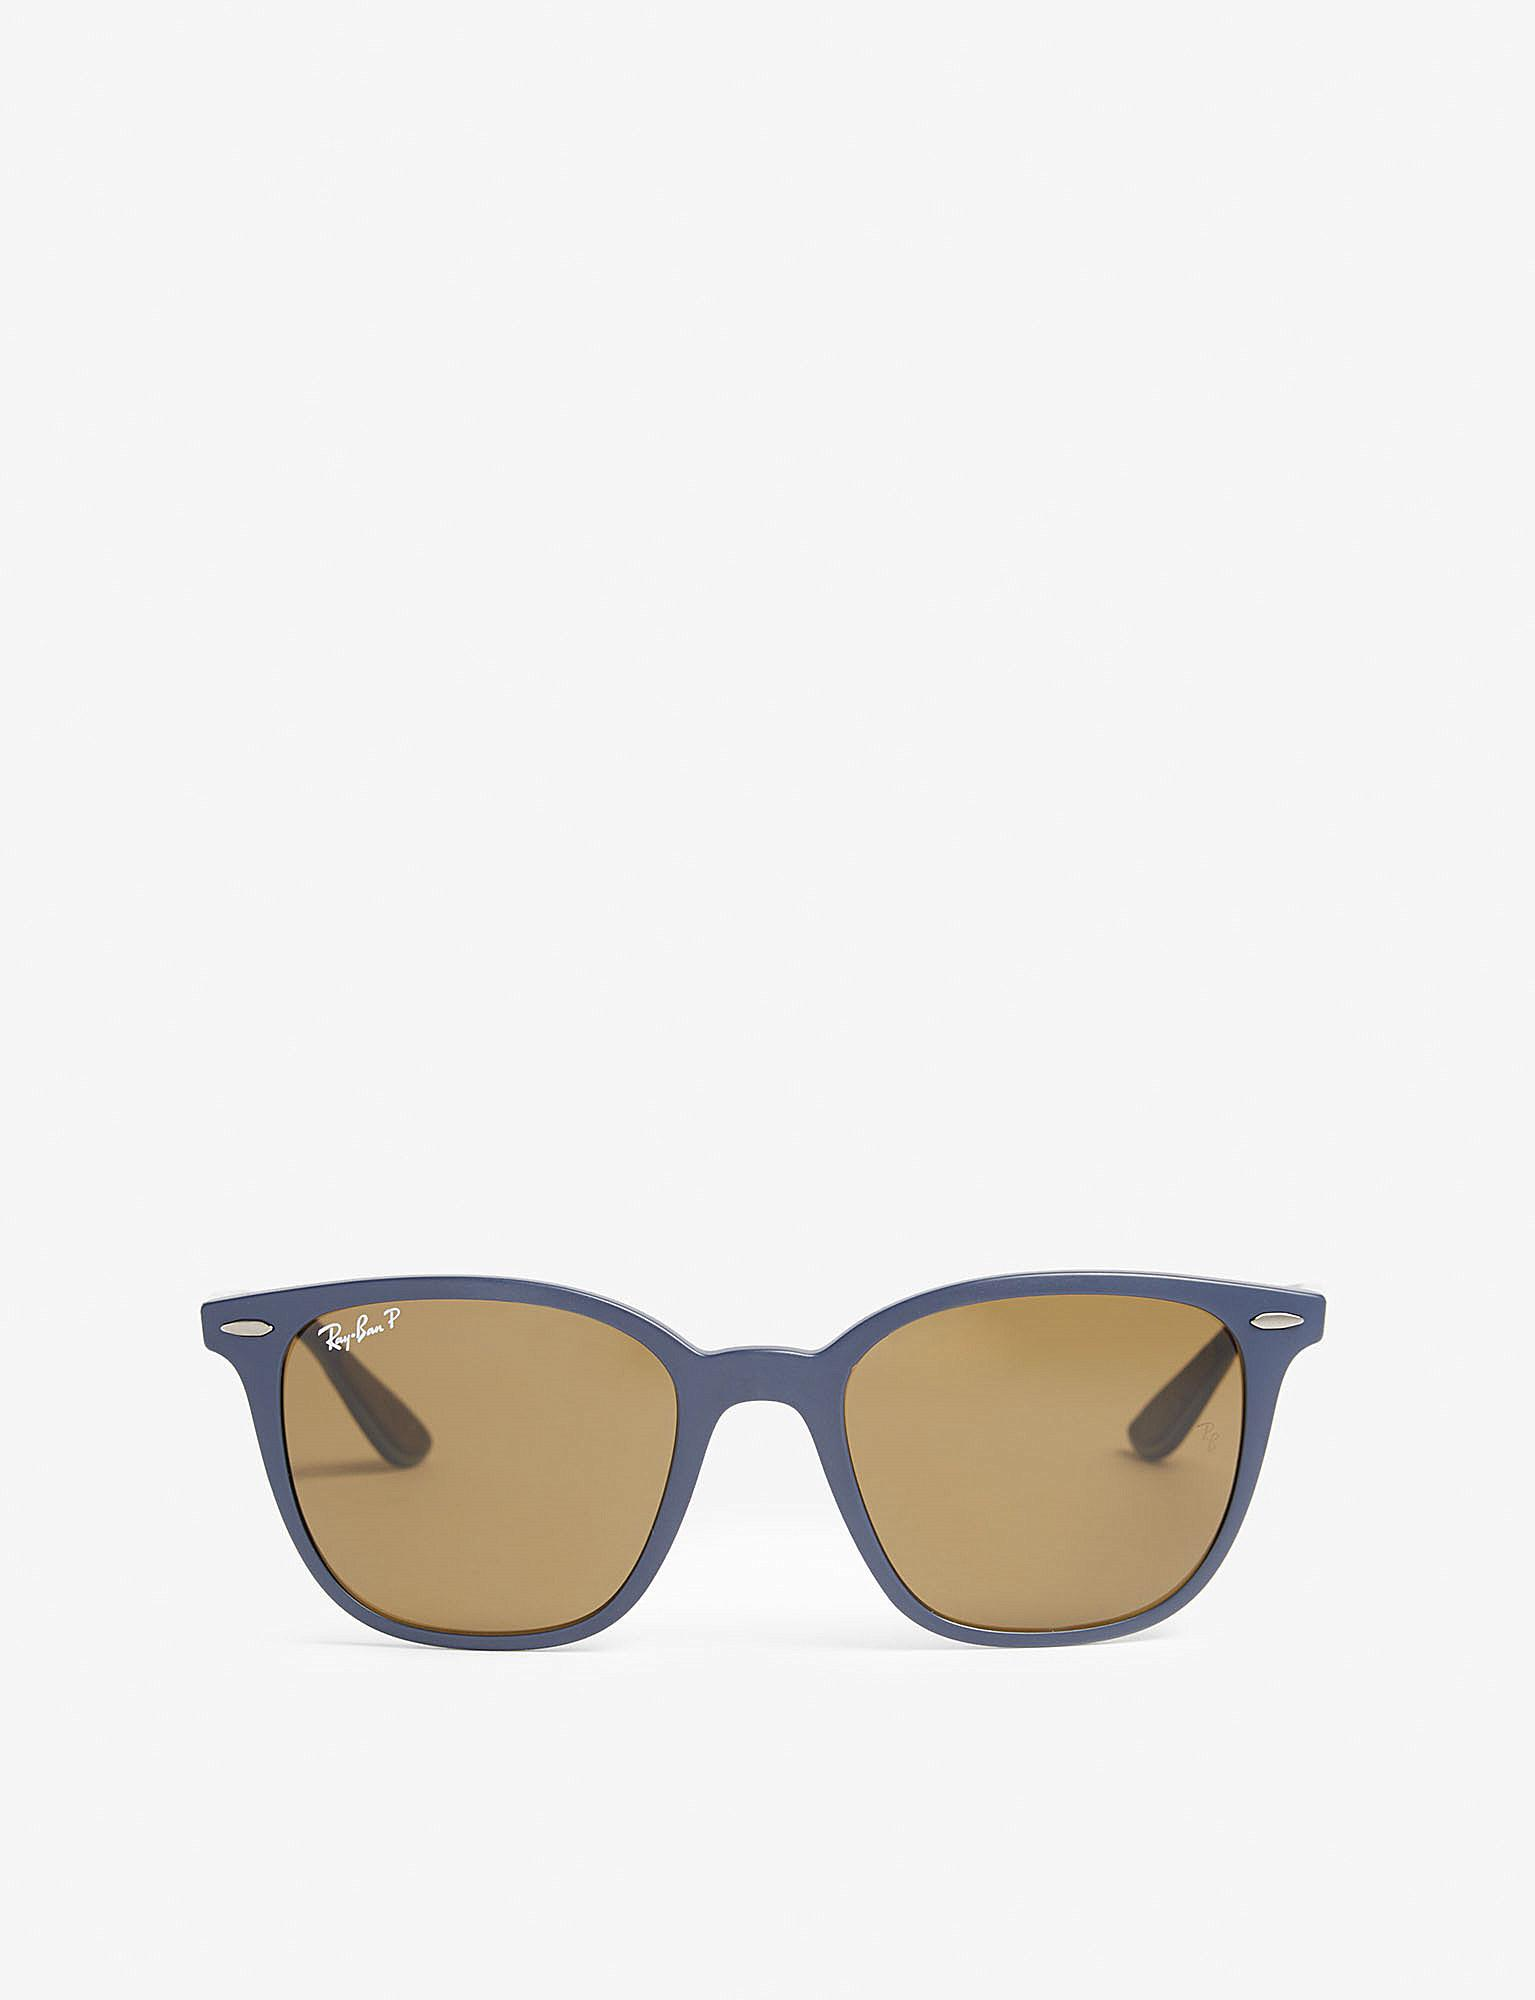 05497094bb Lyst - Ray-Ban Rb4297 Square-frame Sunglasses in Blue